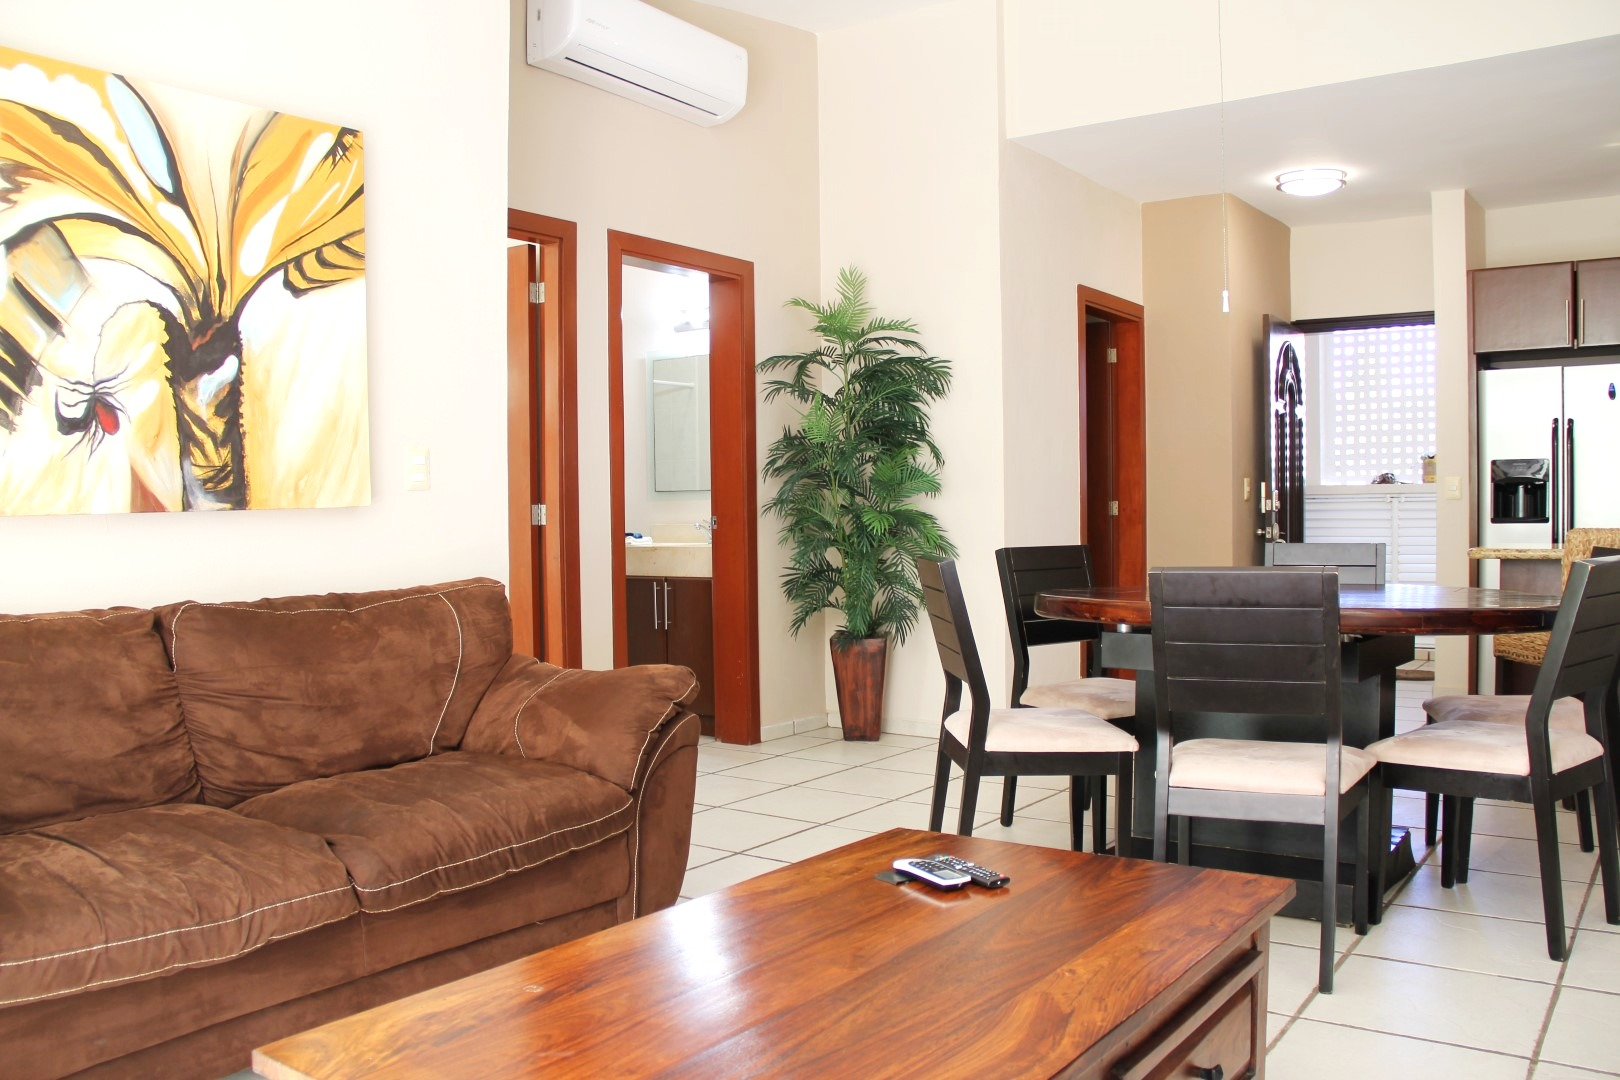 Open living spaces with comfortable furniture.